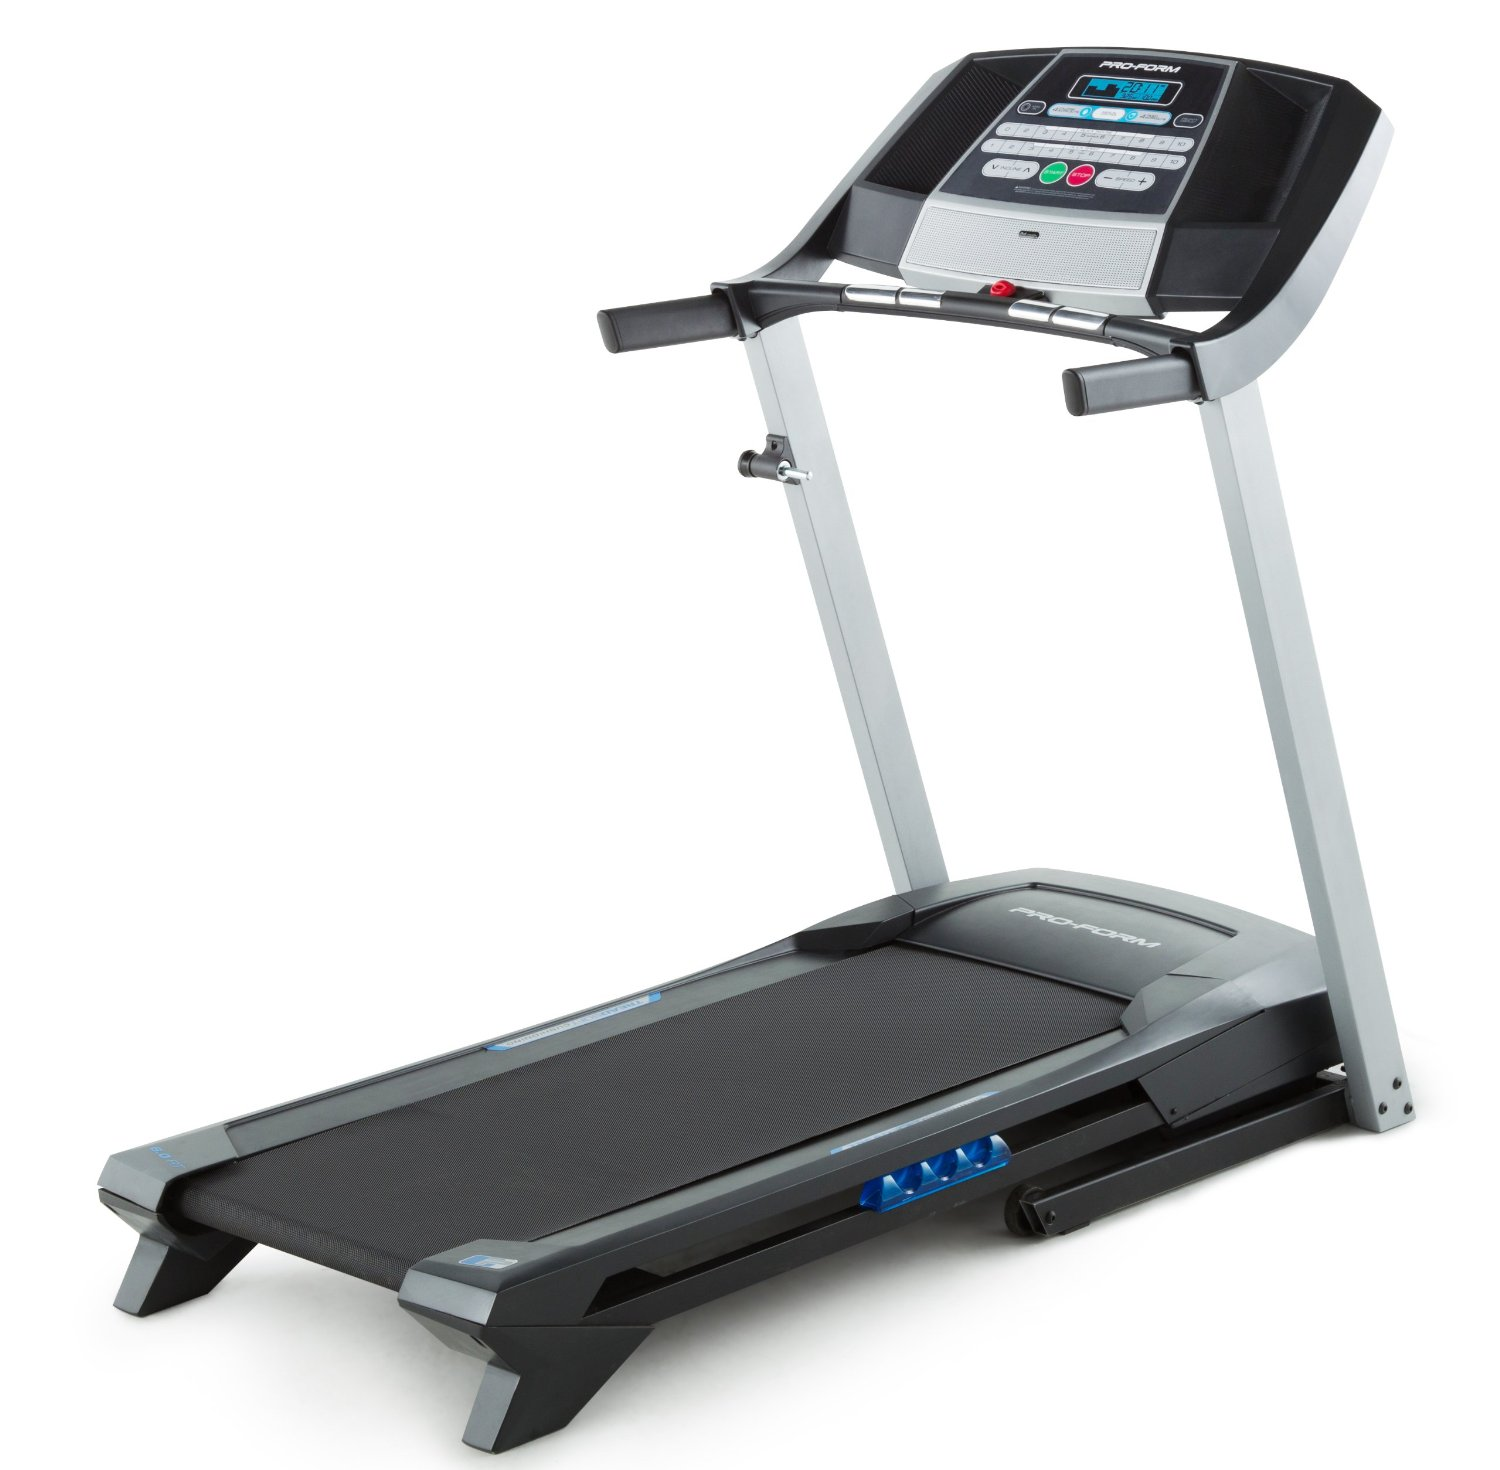 Proform 6.0 RT Treadmill Review – Is it any good?